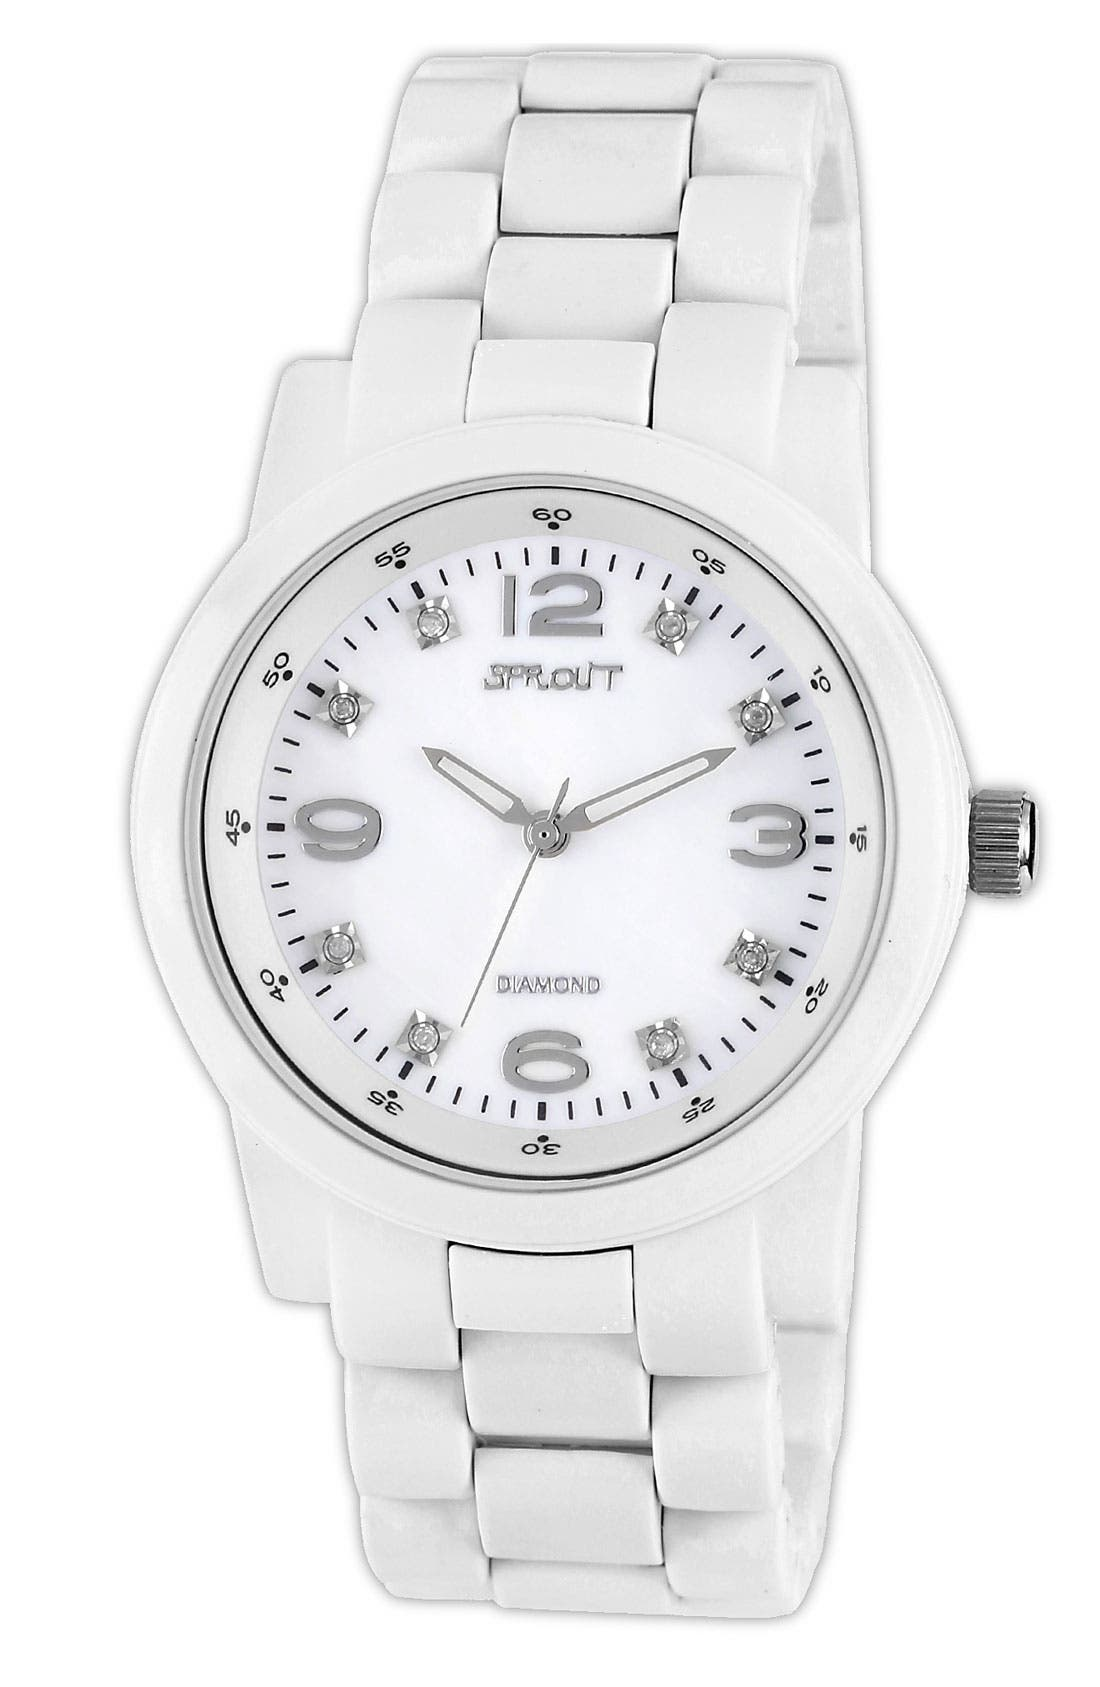 Main Image - SPROUT™ Watches Diamond Index Mother-of-Pearl Watch, 38mm